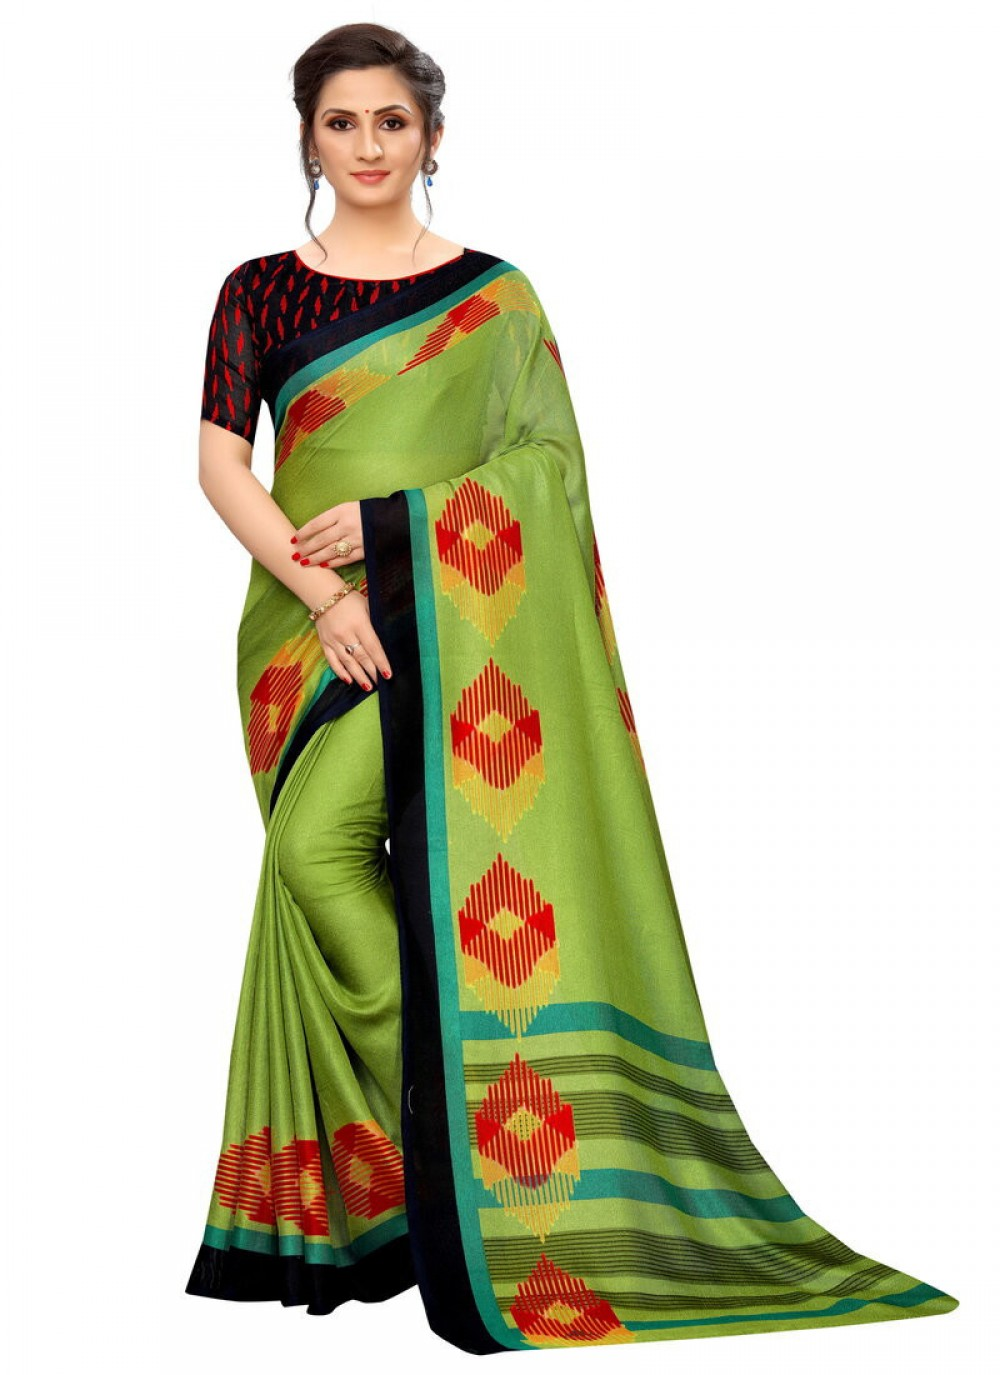 Admiring Parrot Casual Wear Printed Saree online available